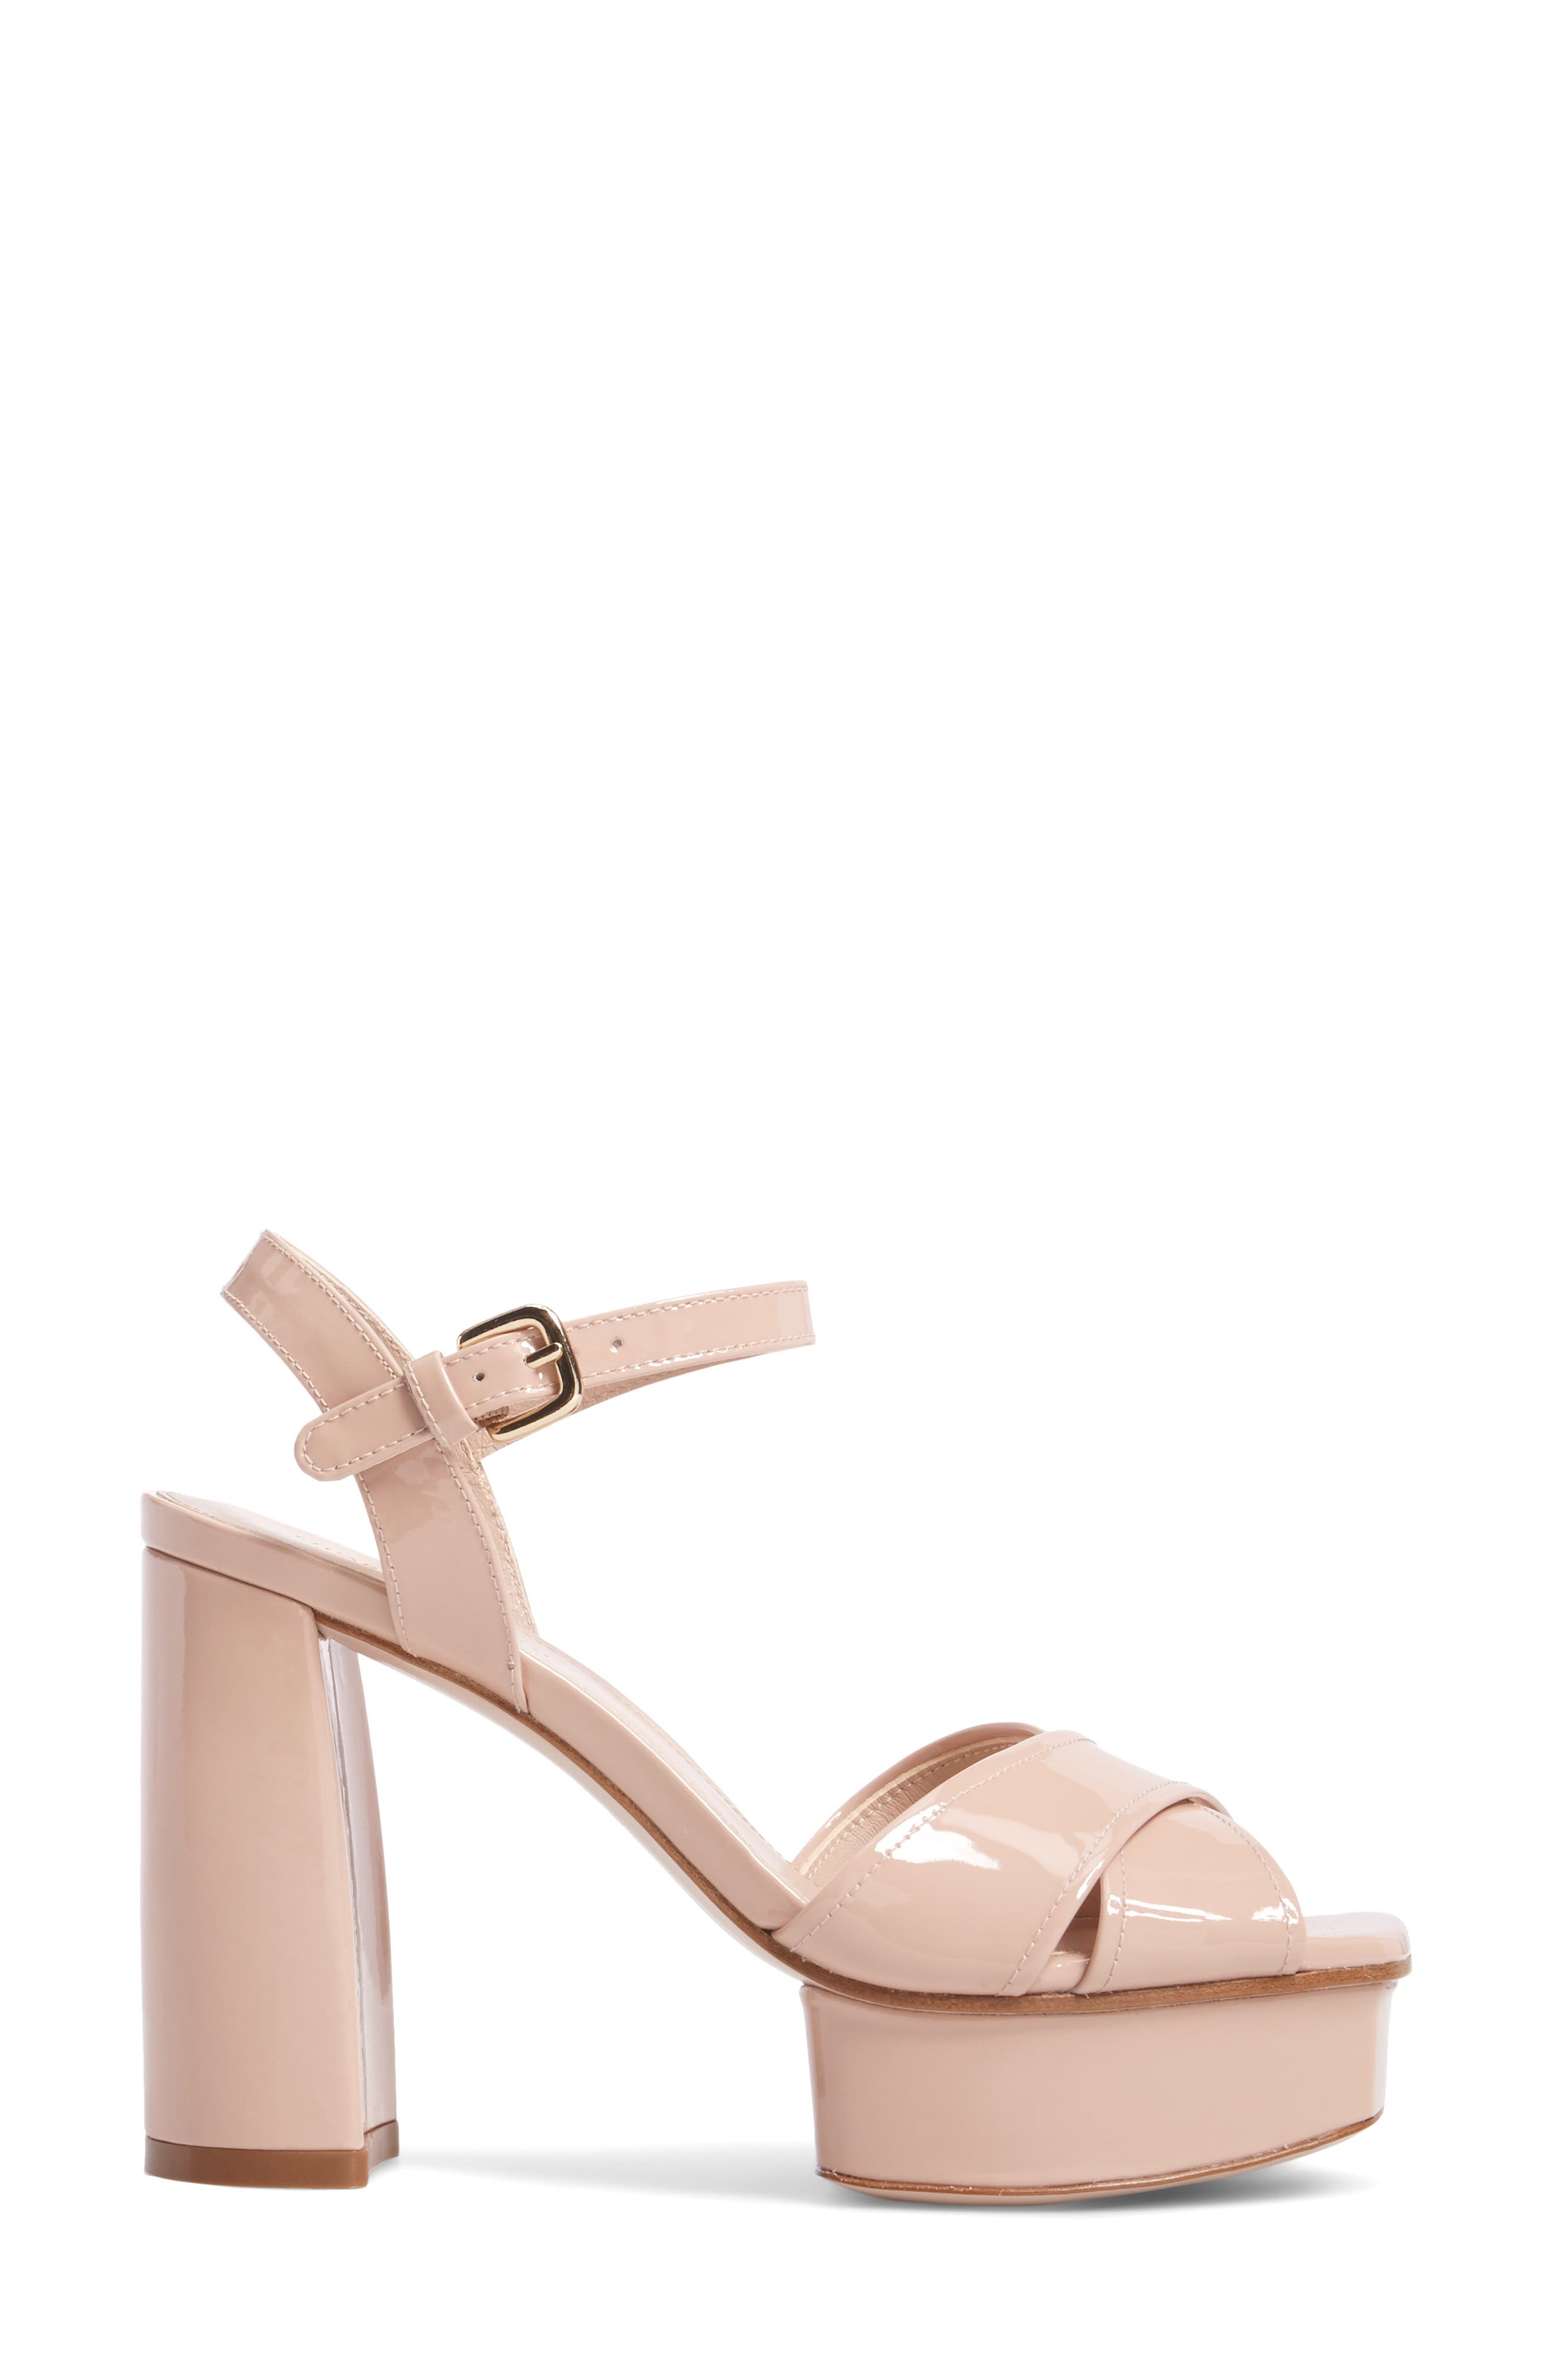 Exposed Platform Sandal,                             Alternate thumbnail 13, color,